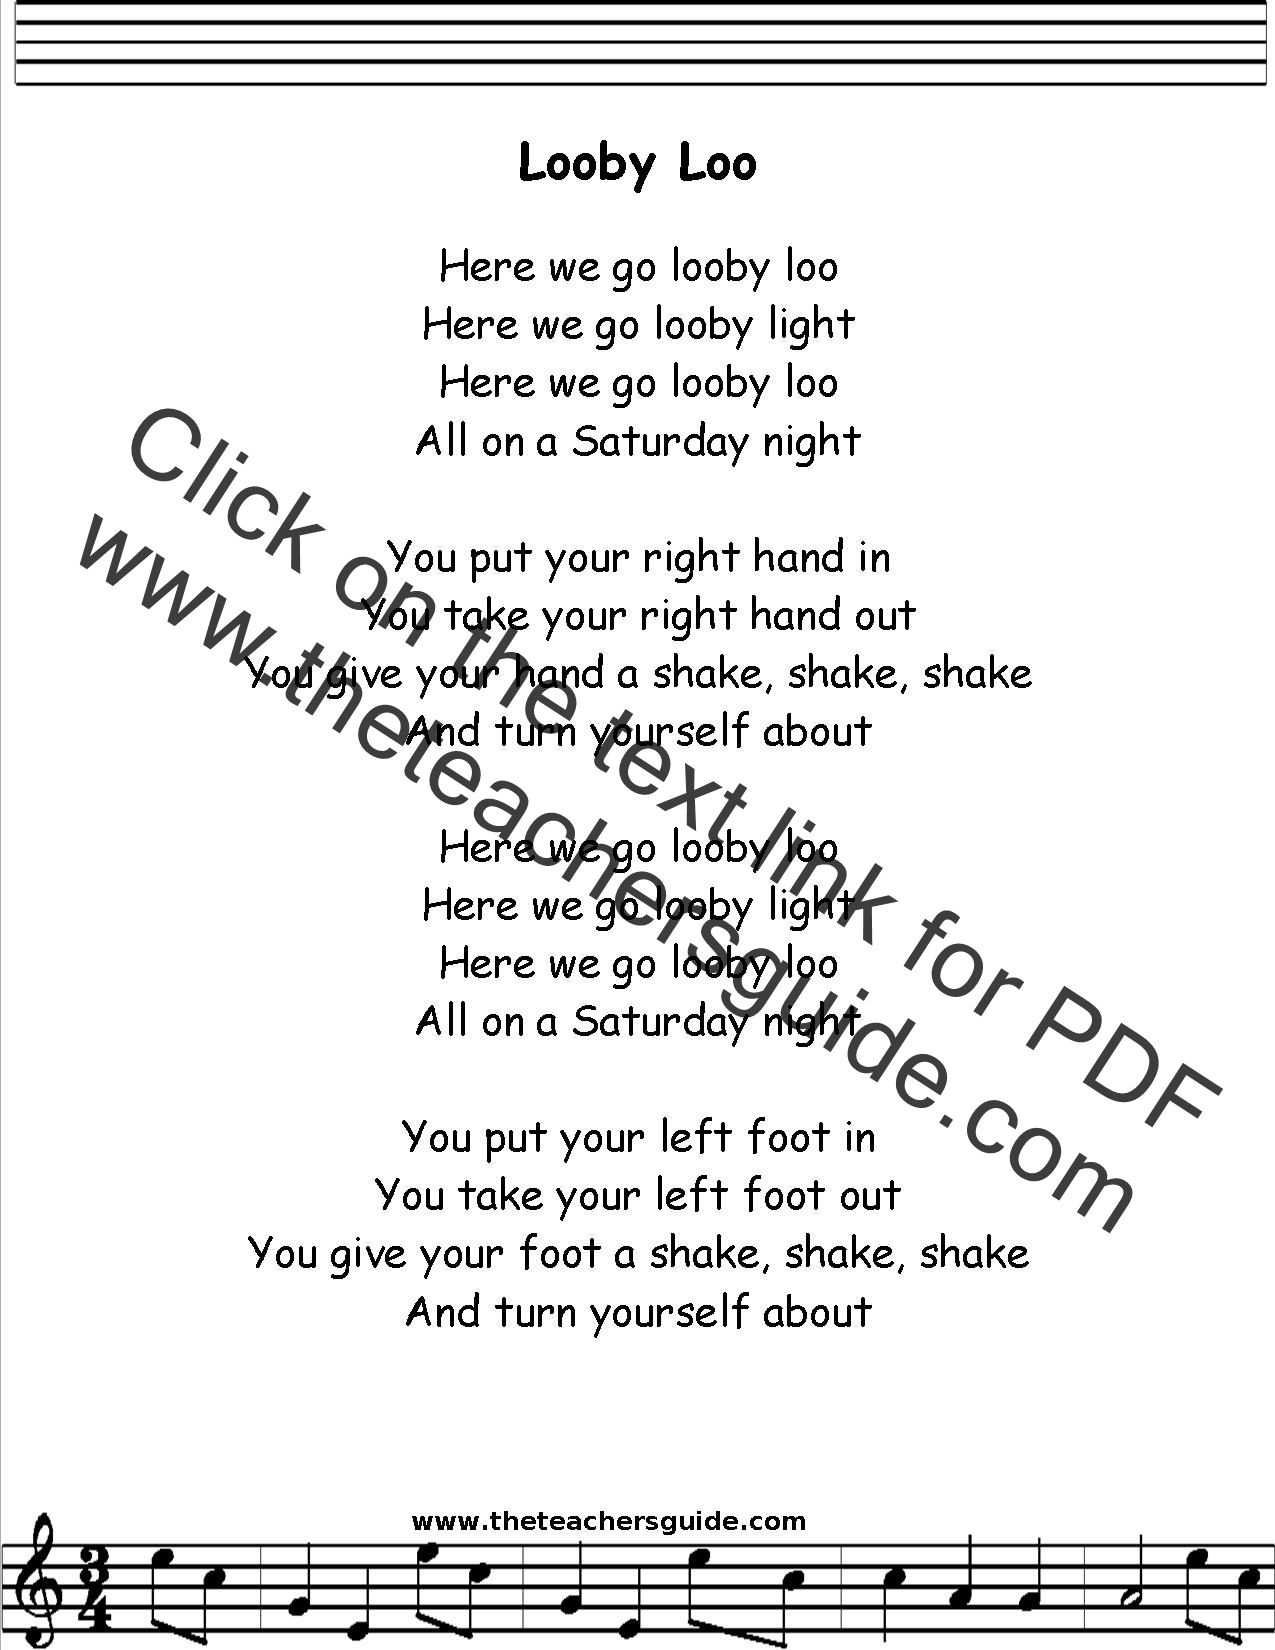 Looby Loo Lyrics Printout Midi And Video